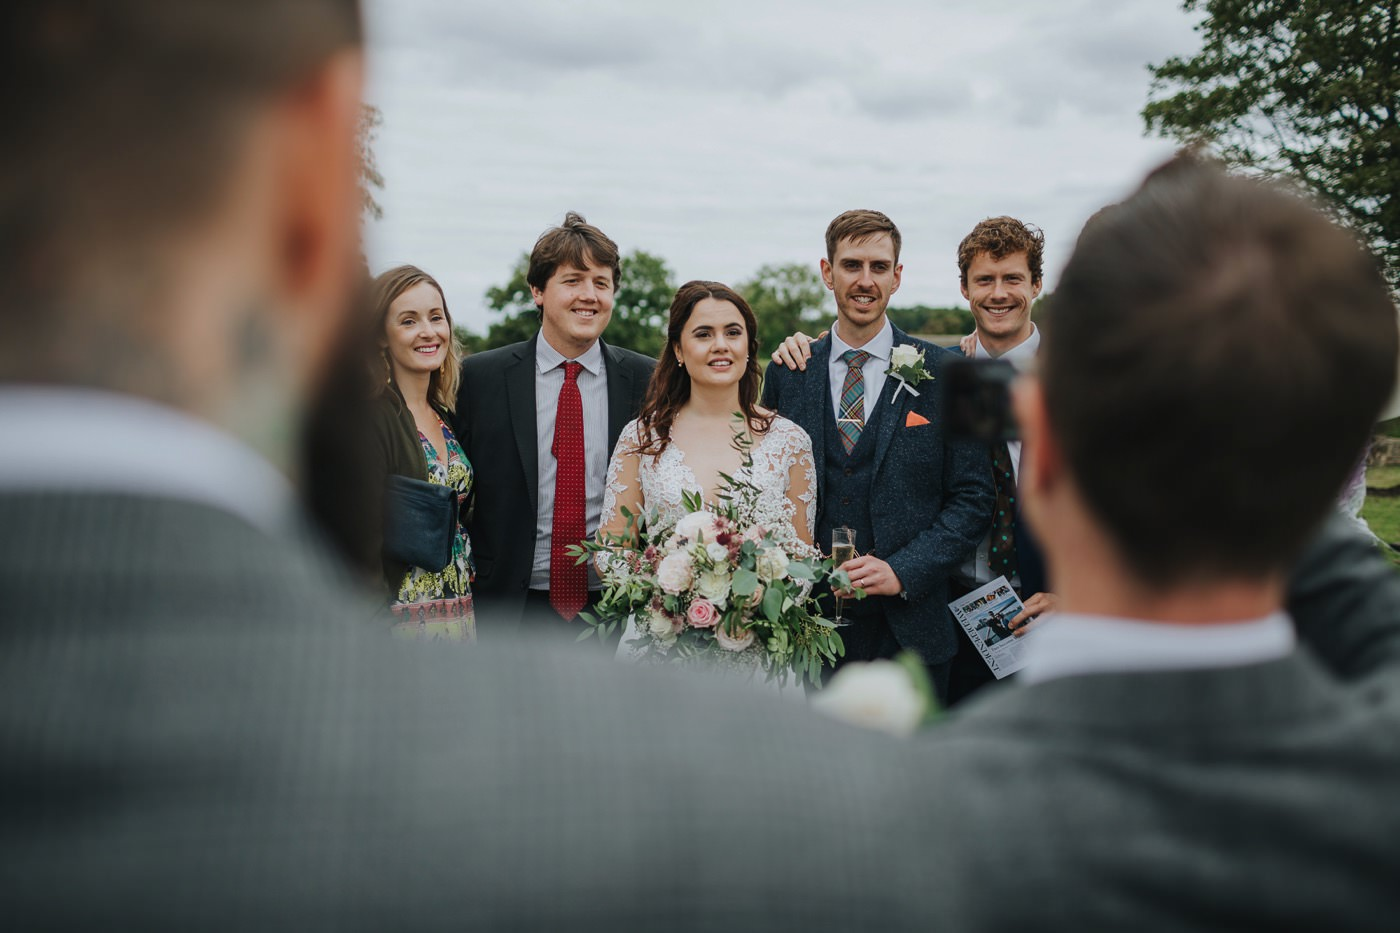 Steve & Tiffany | Bradgate Park wedding 69